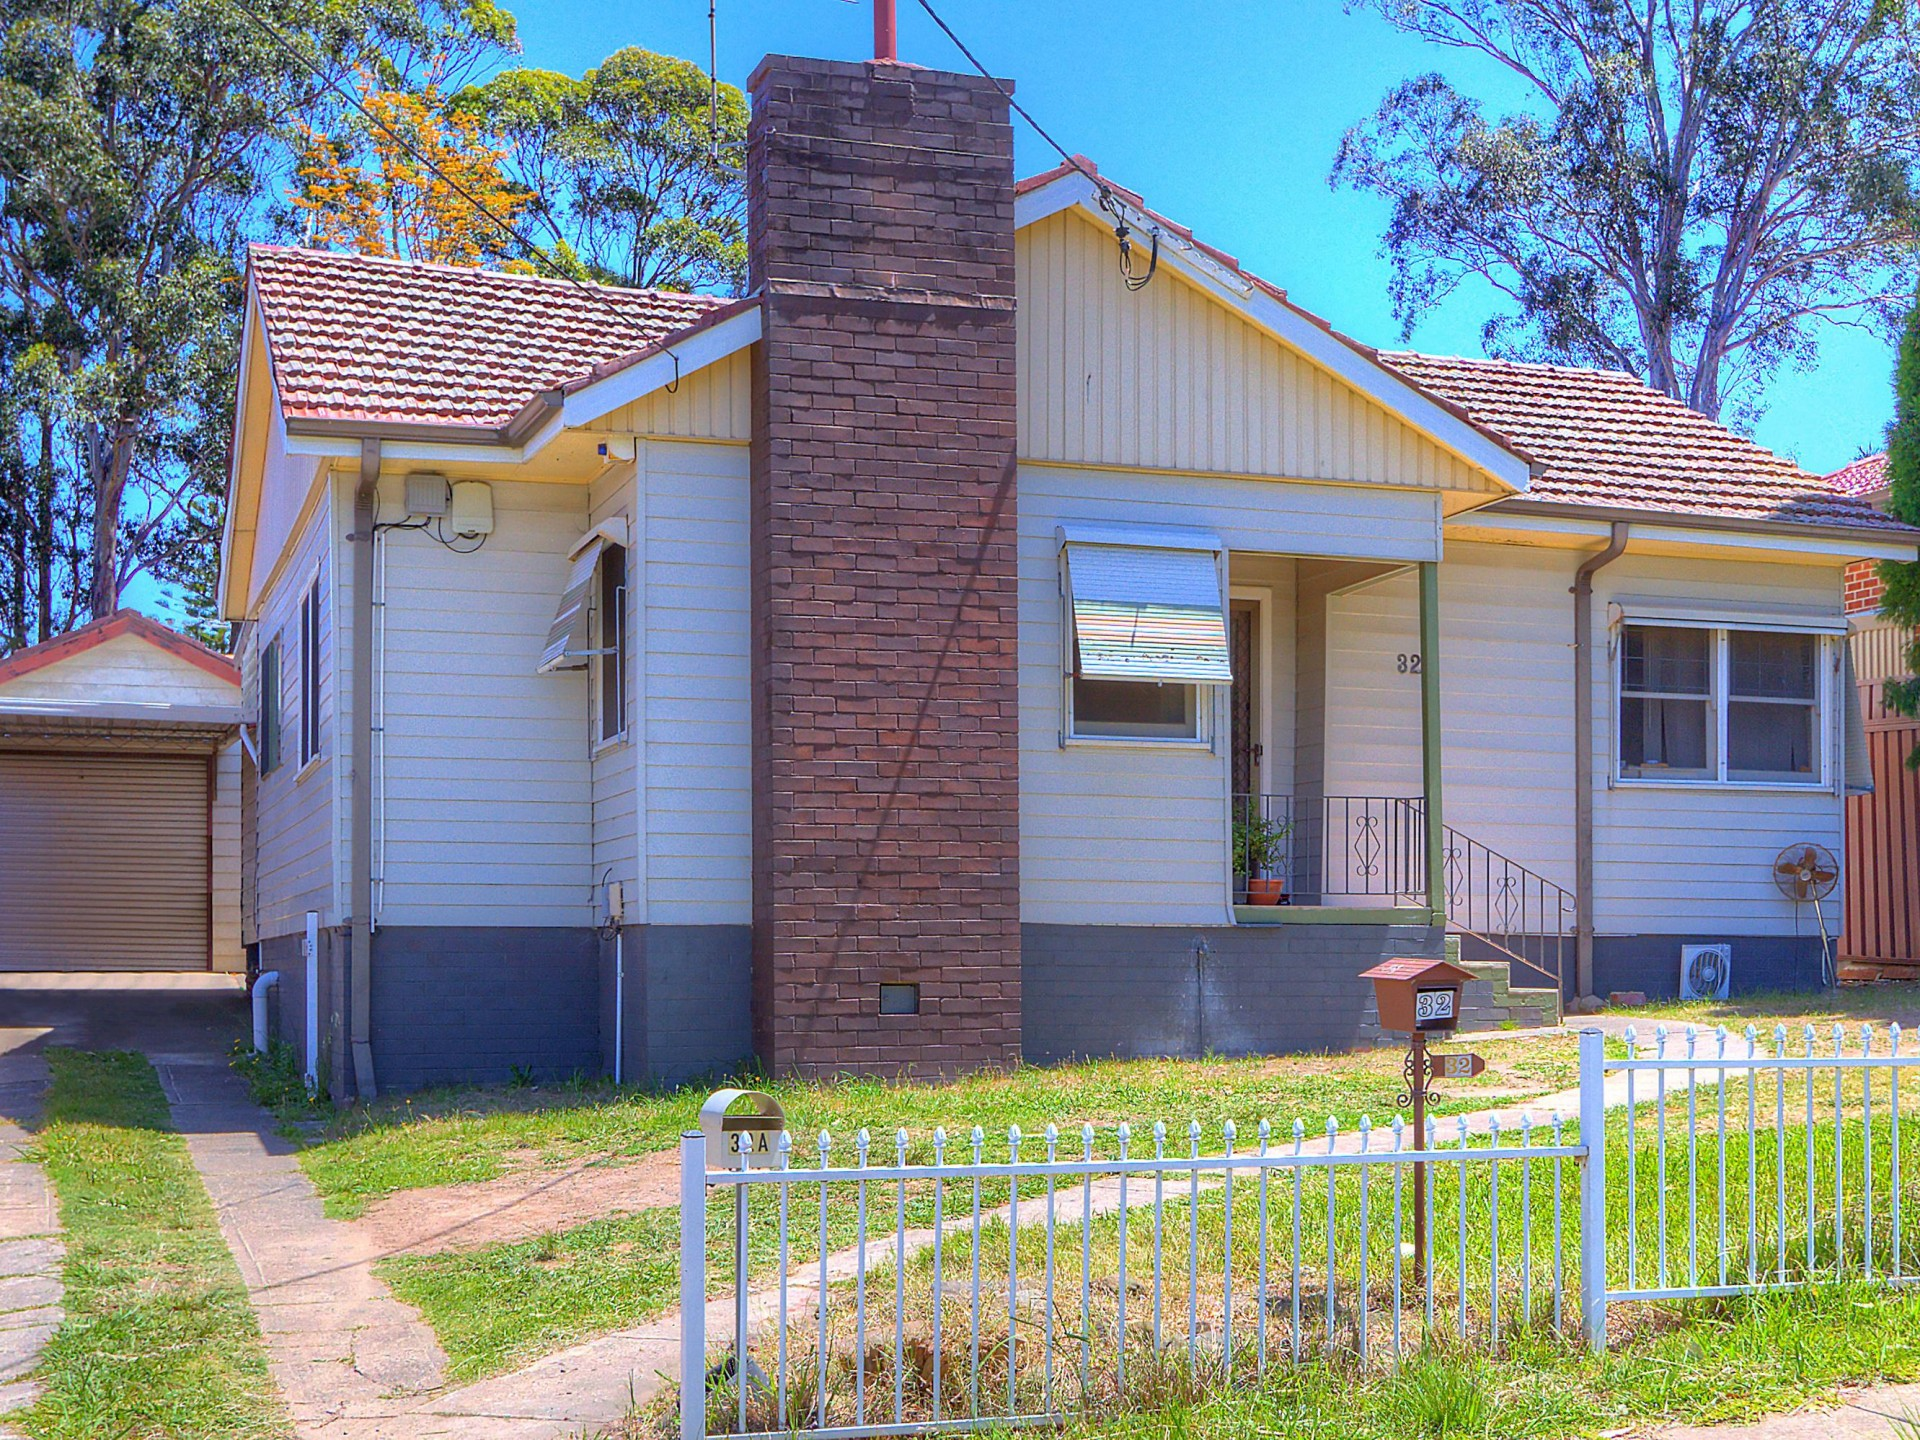 3 bedroom home and walk to station!